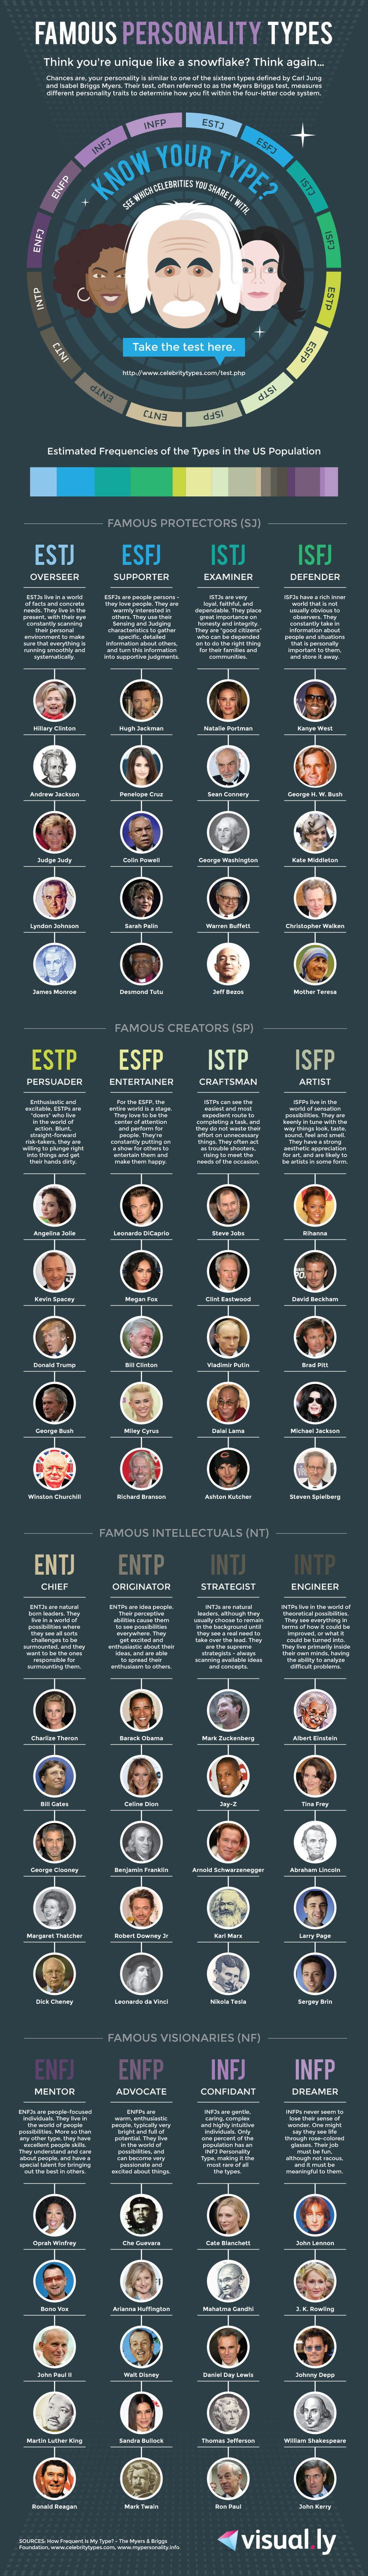 The famous people who share your personality type [infographic]